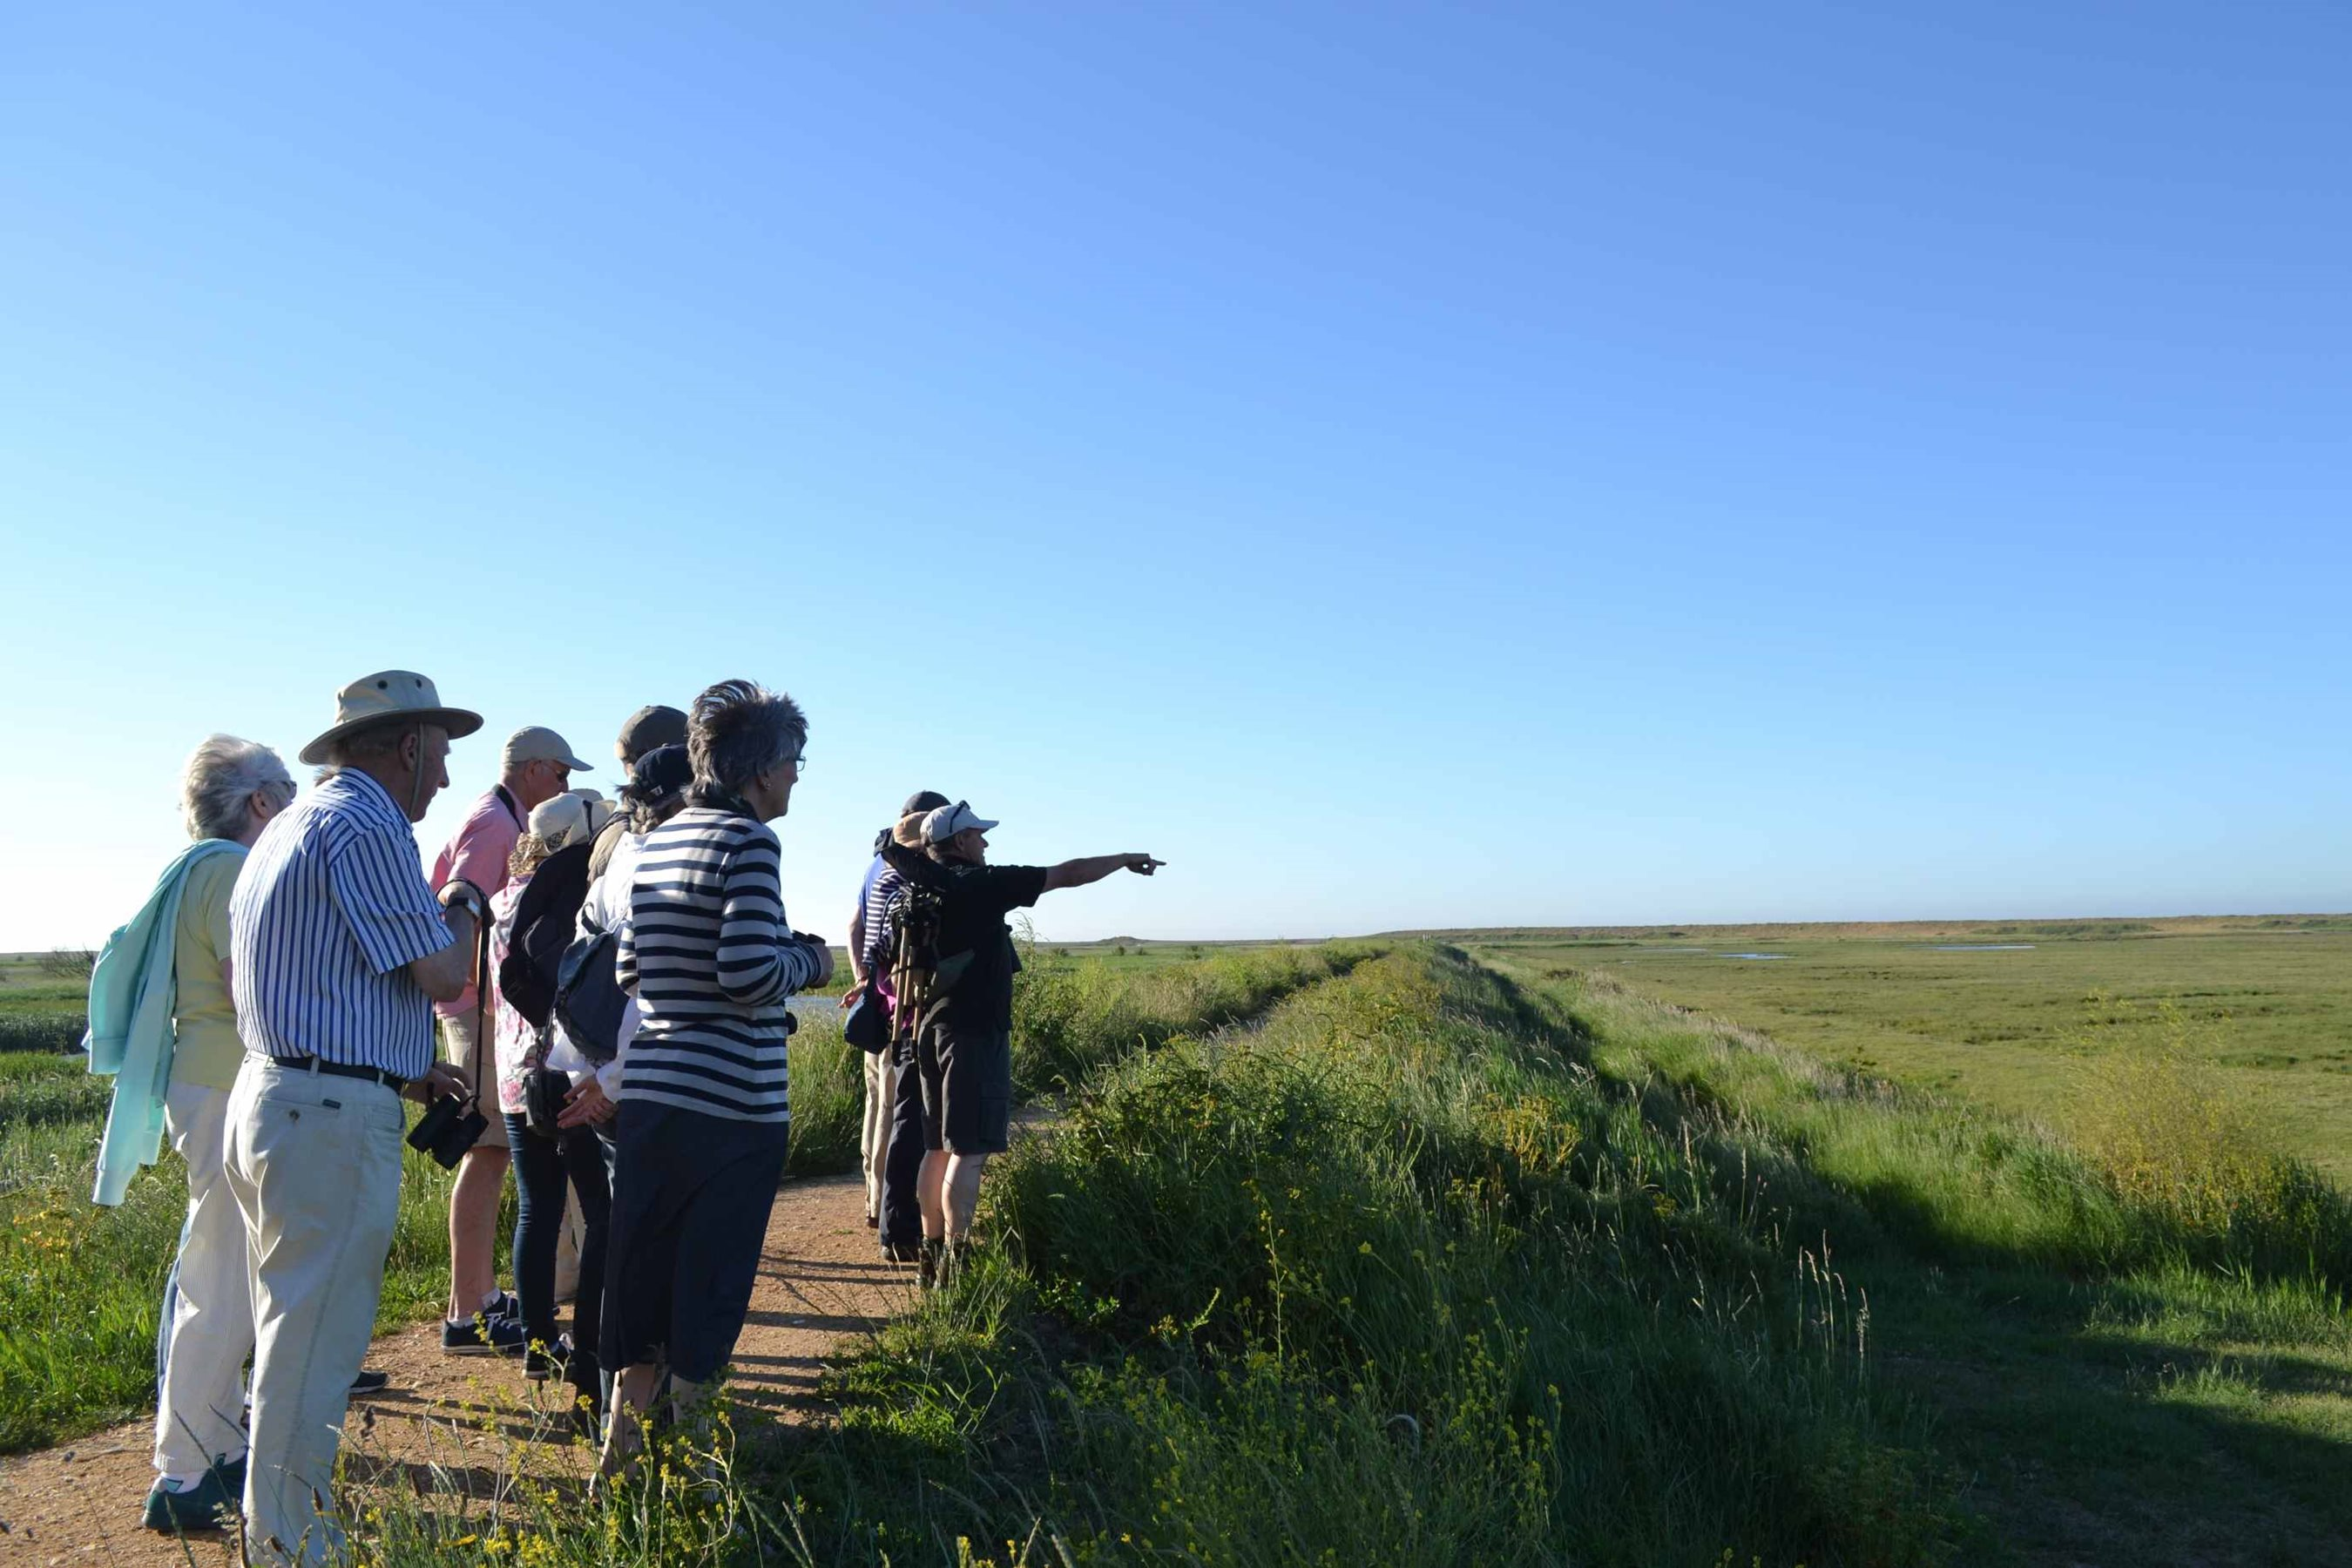 Circuit of Cley, NWT Cley Marshes NR25 7SA | A guided circuit walk around the reserve  | Walking, guided, wildlife